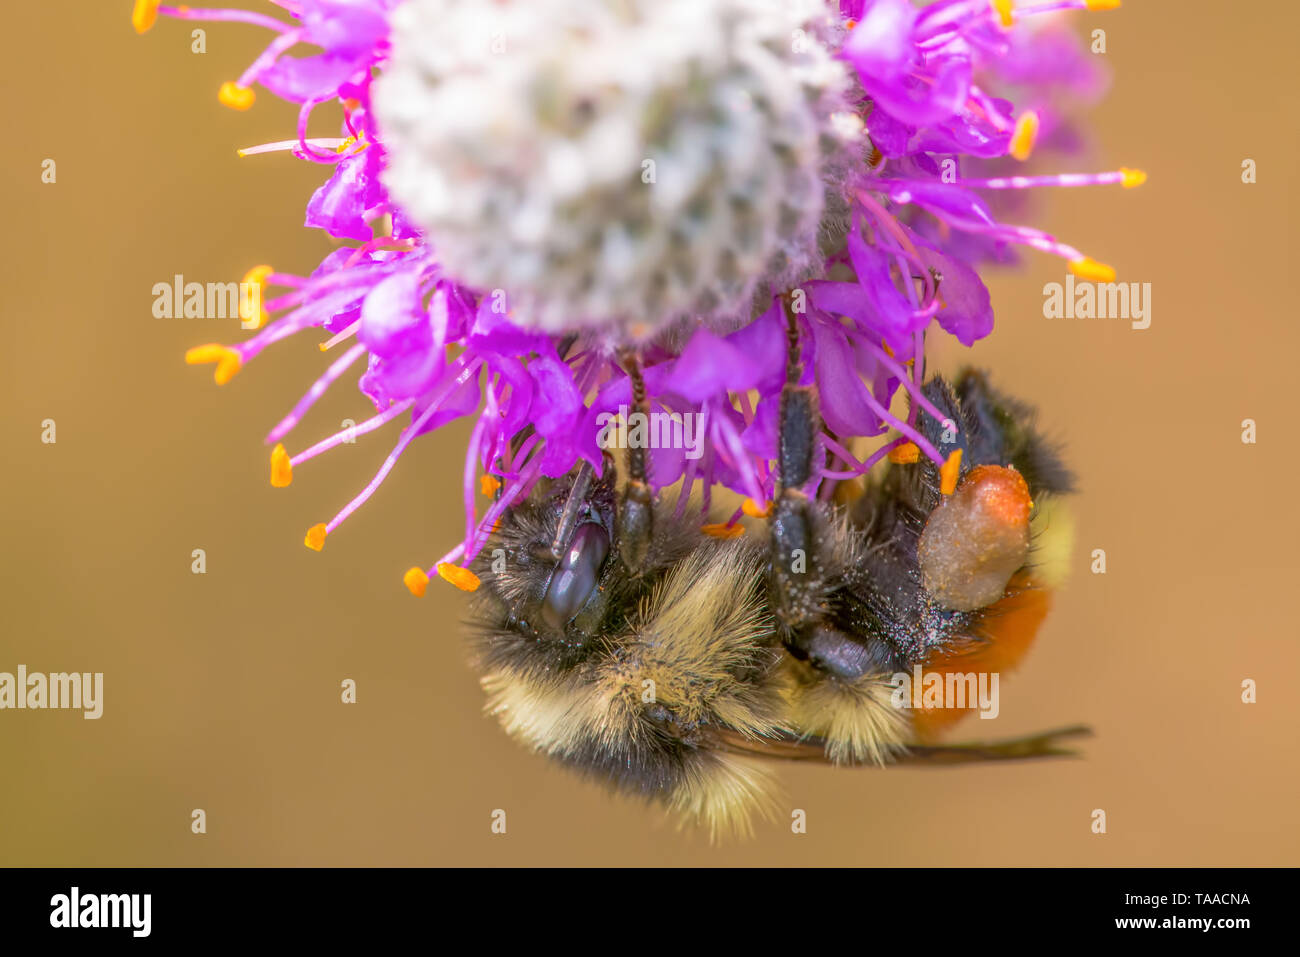 Orange-belted bumble bee on purple prairie clover at Crex Meadows Wildlife Area in Northern Wisconsin - detailed extreme close up macro of insect - Stock Image